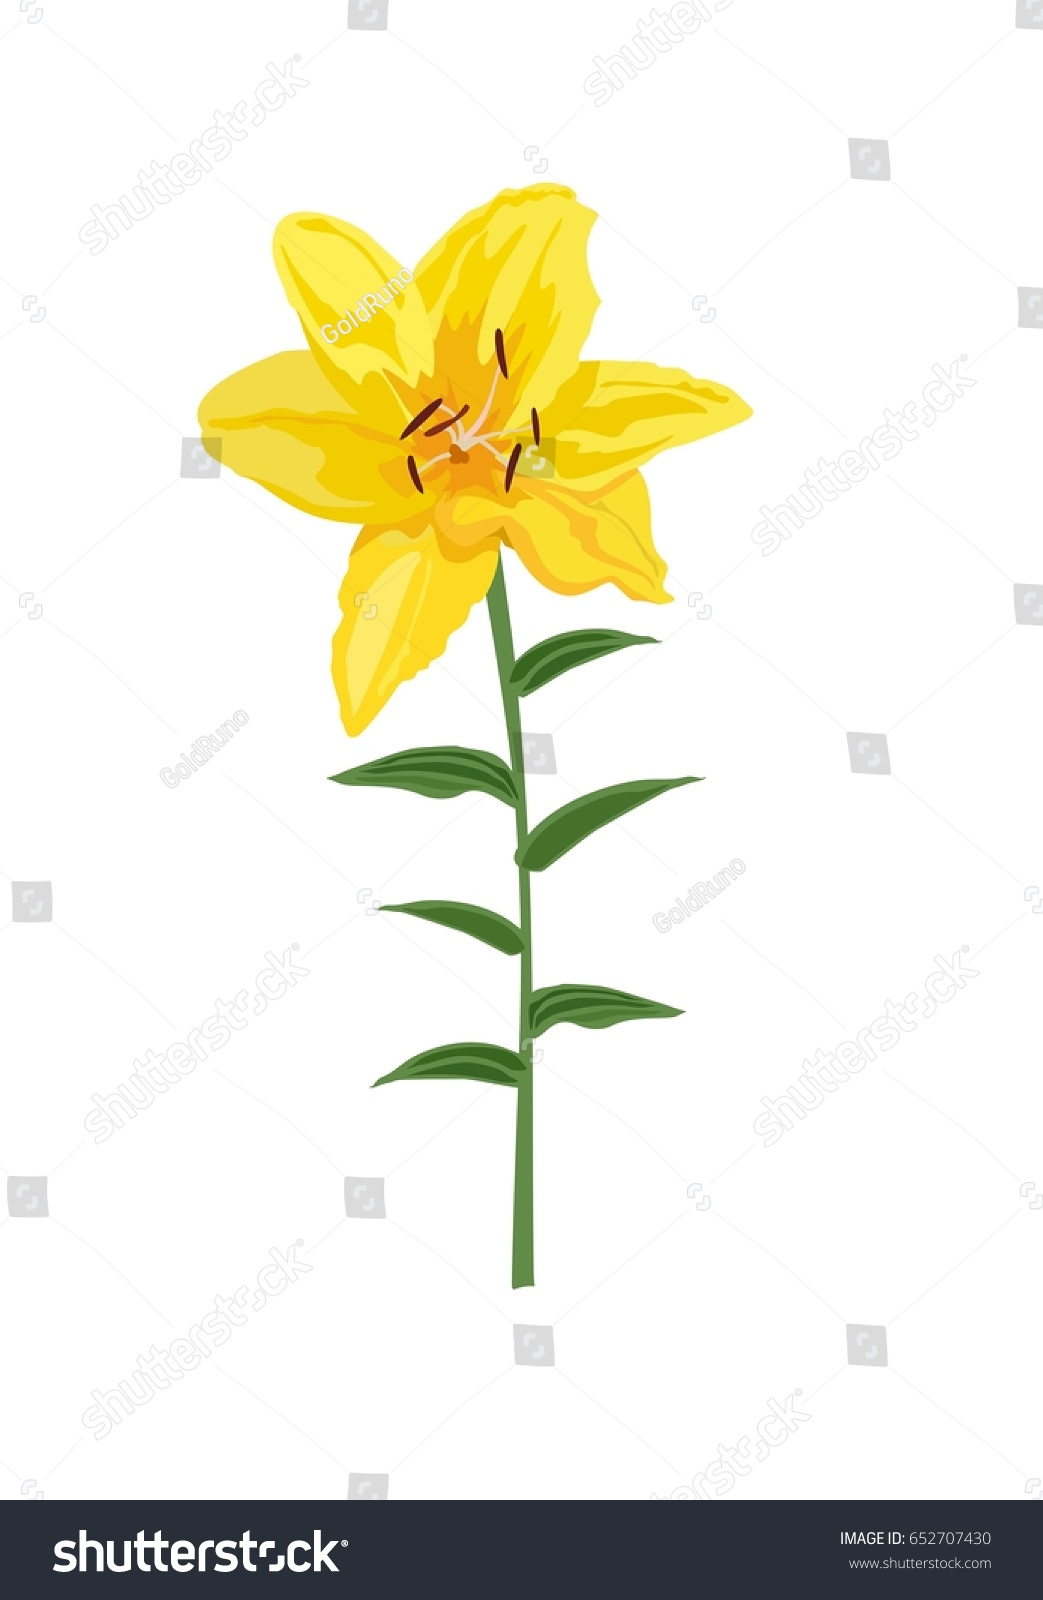 Closeup Hand Drawn Yellow Lily Flower Isolated On White Background